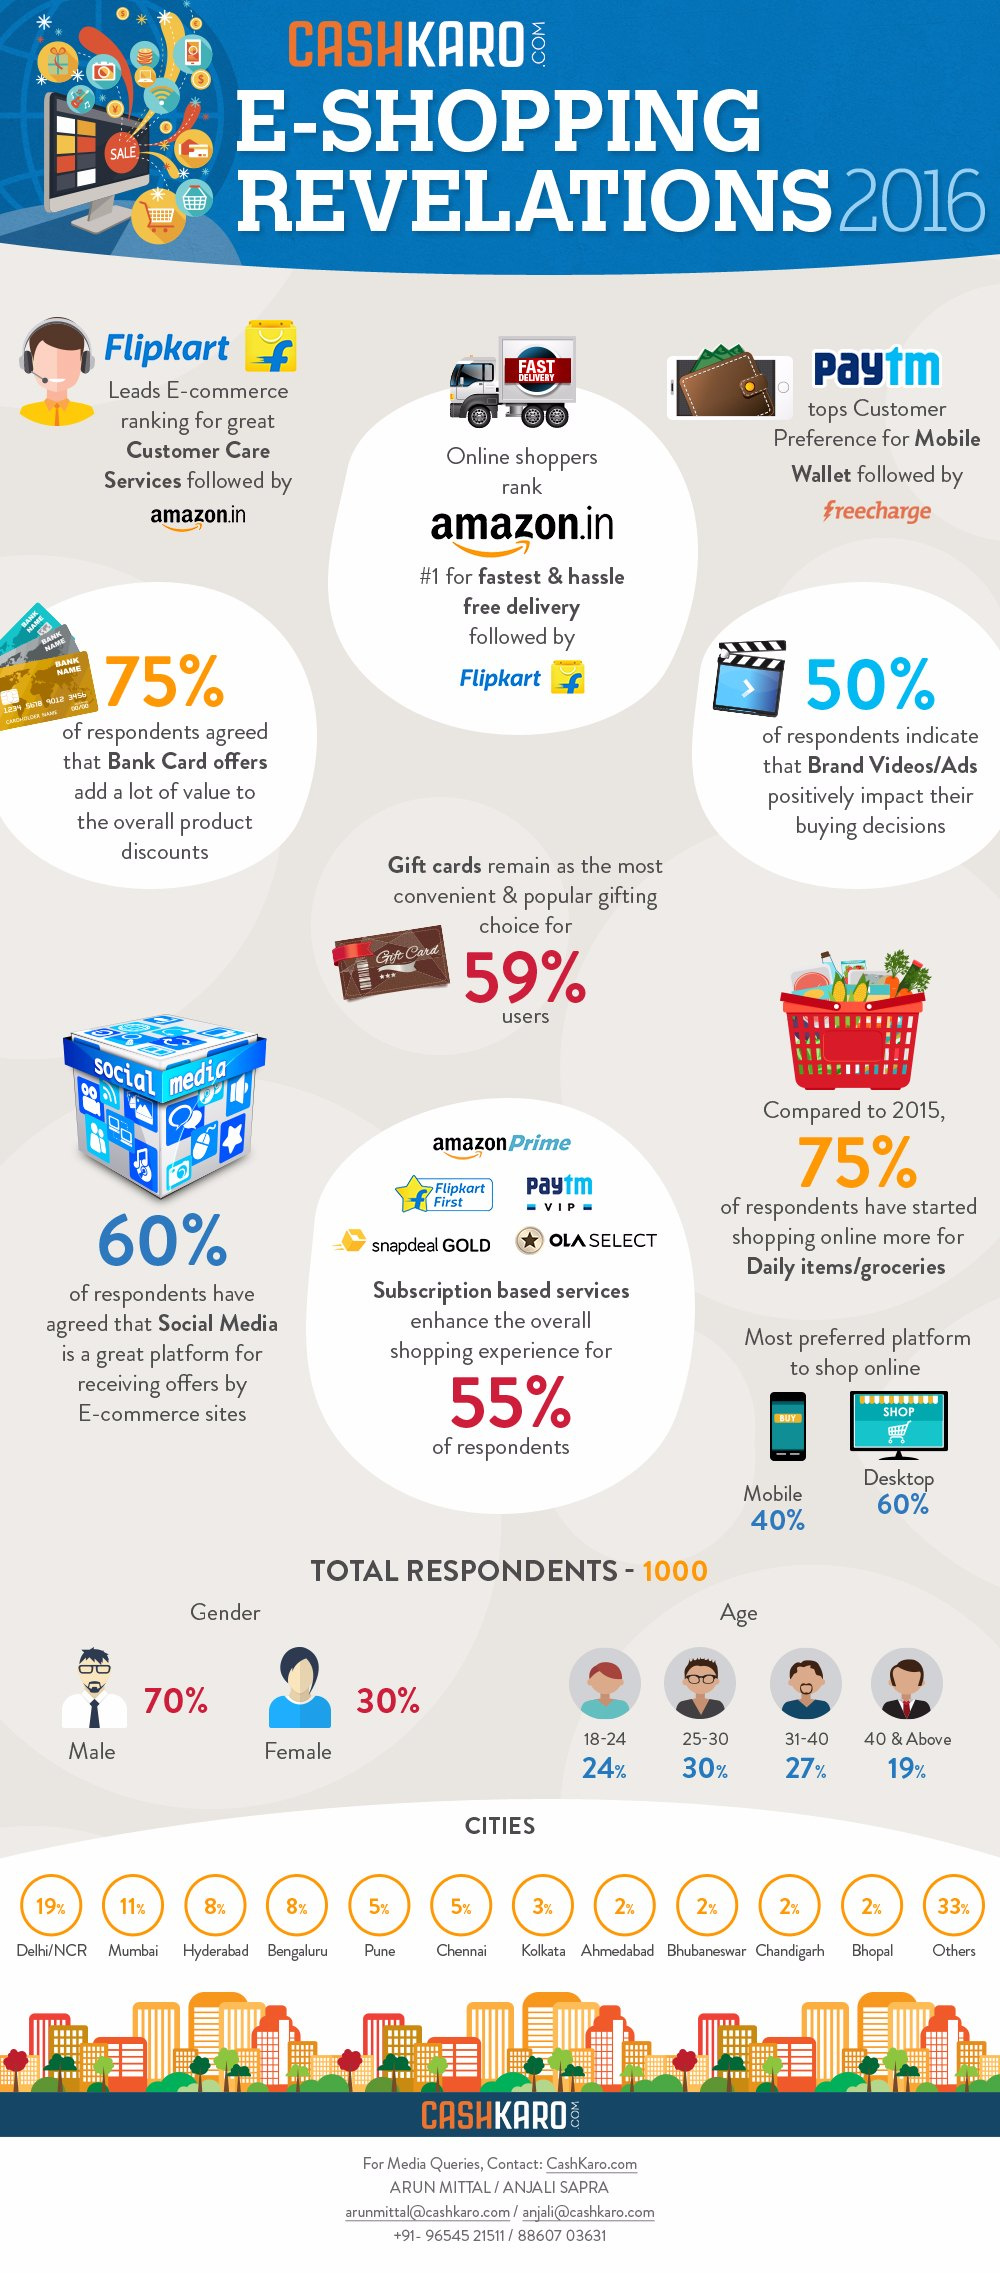 CashKaro.com 'E-Shopping Revelations' 2016 - INFOGRAPHIC